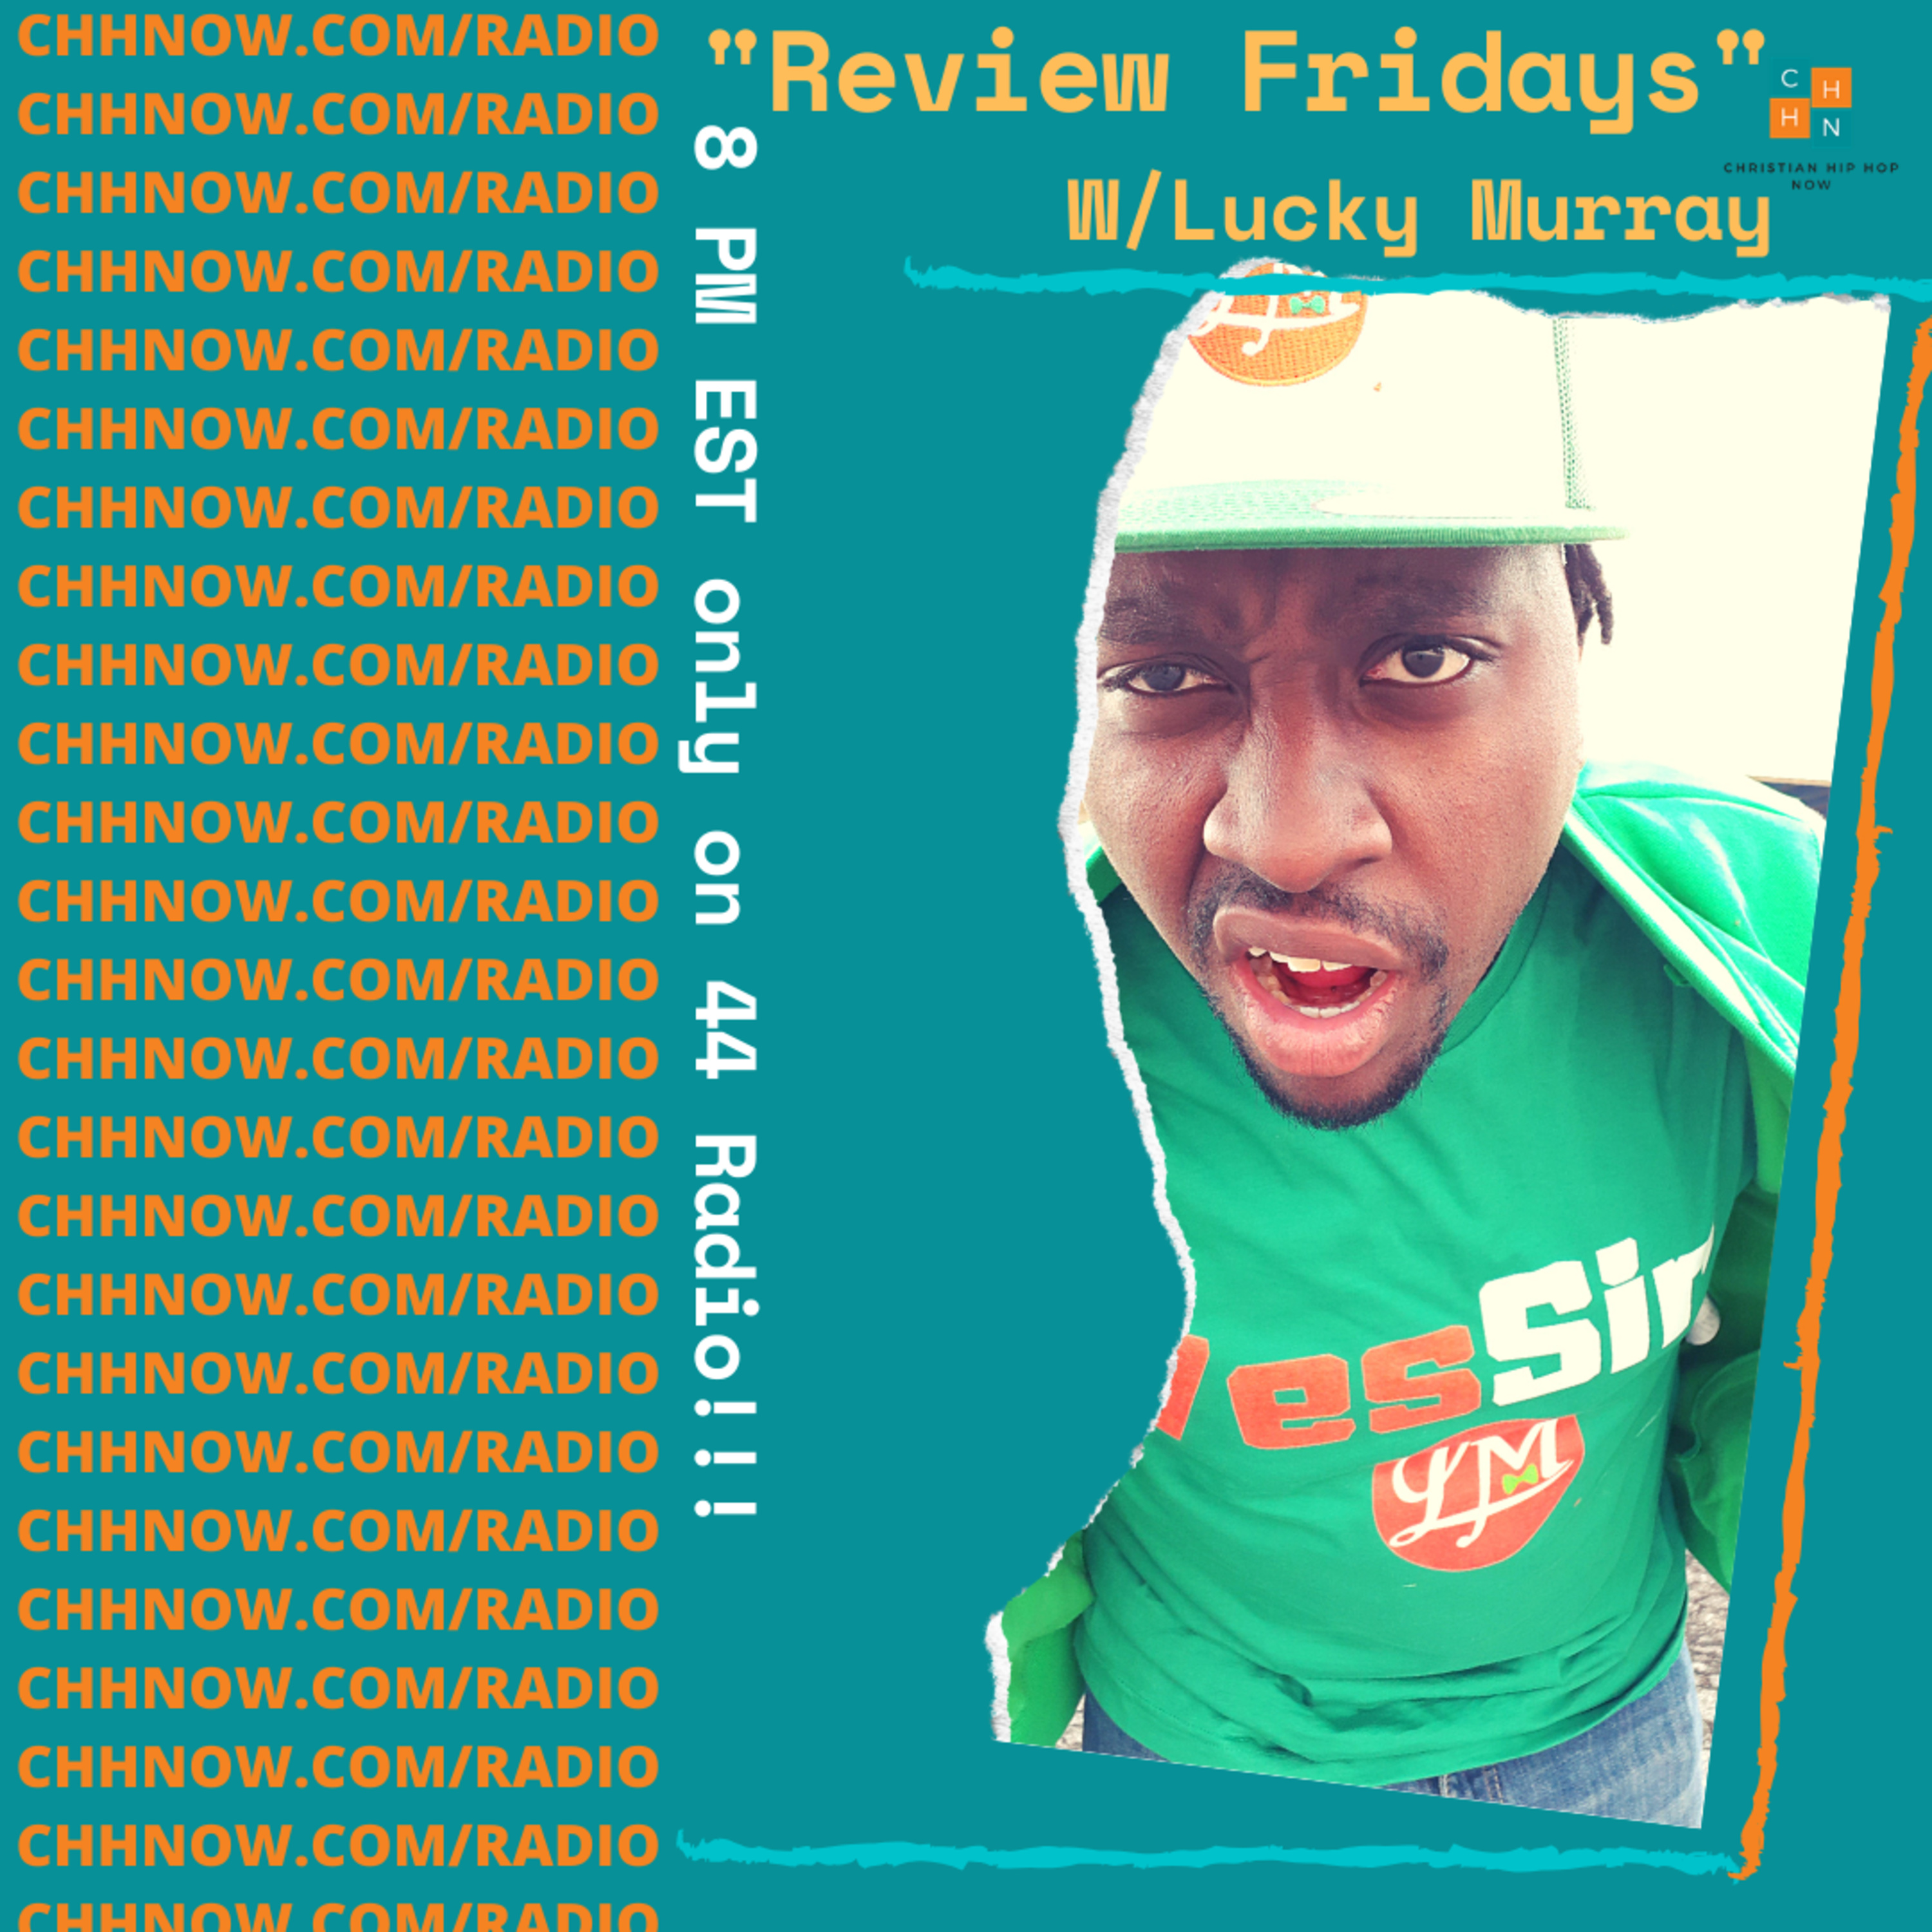 Review Friday's New Christian Hip Hop on 44 Radio 8-21-20